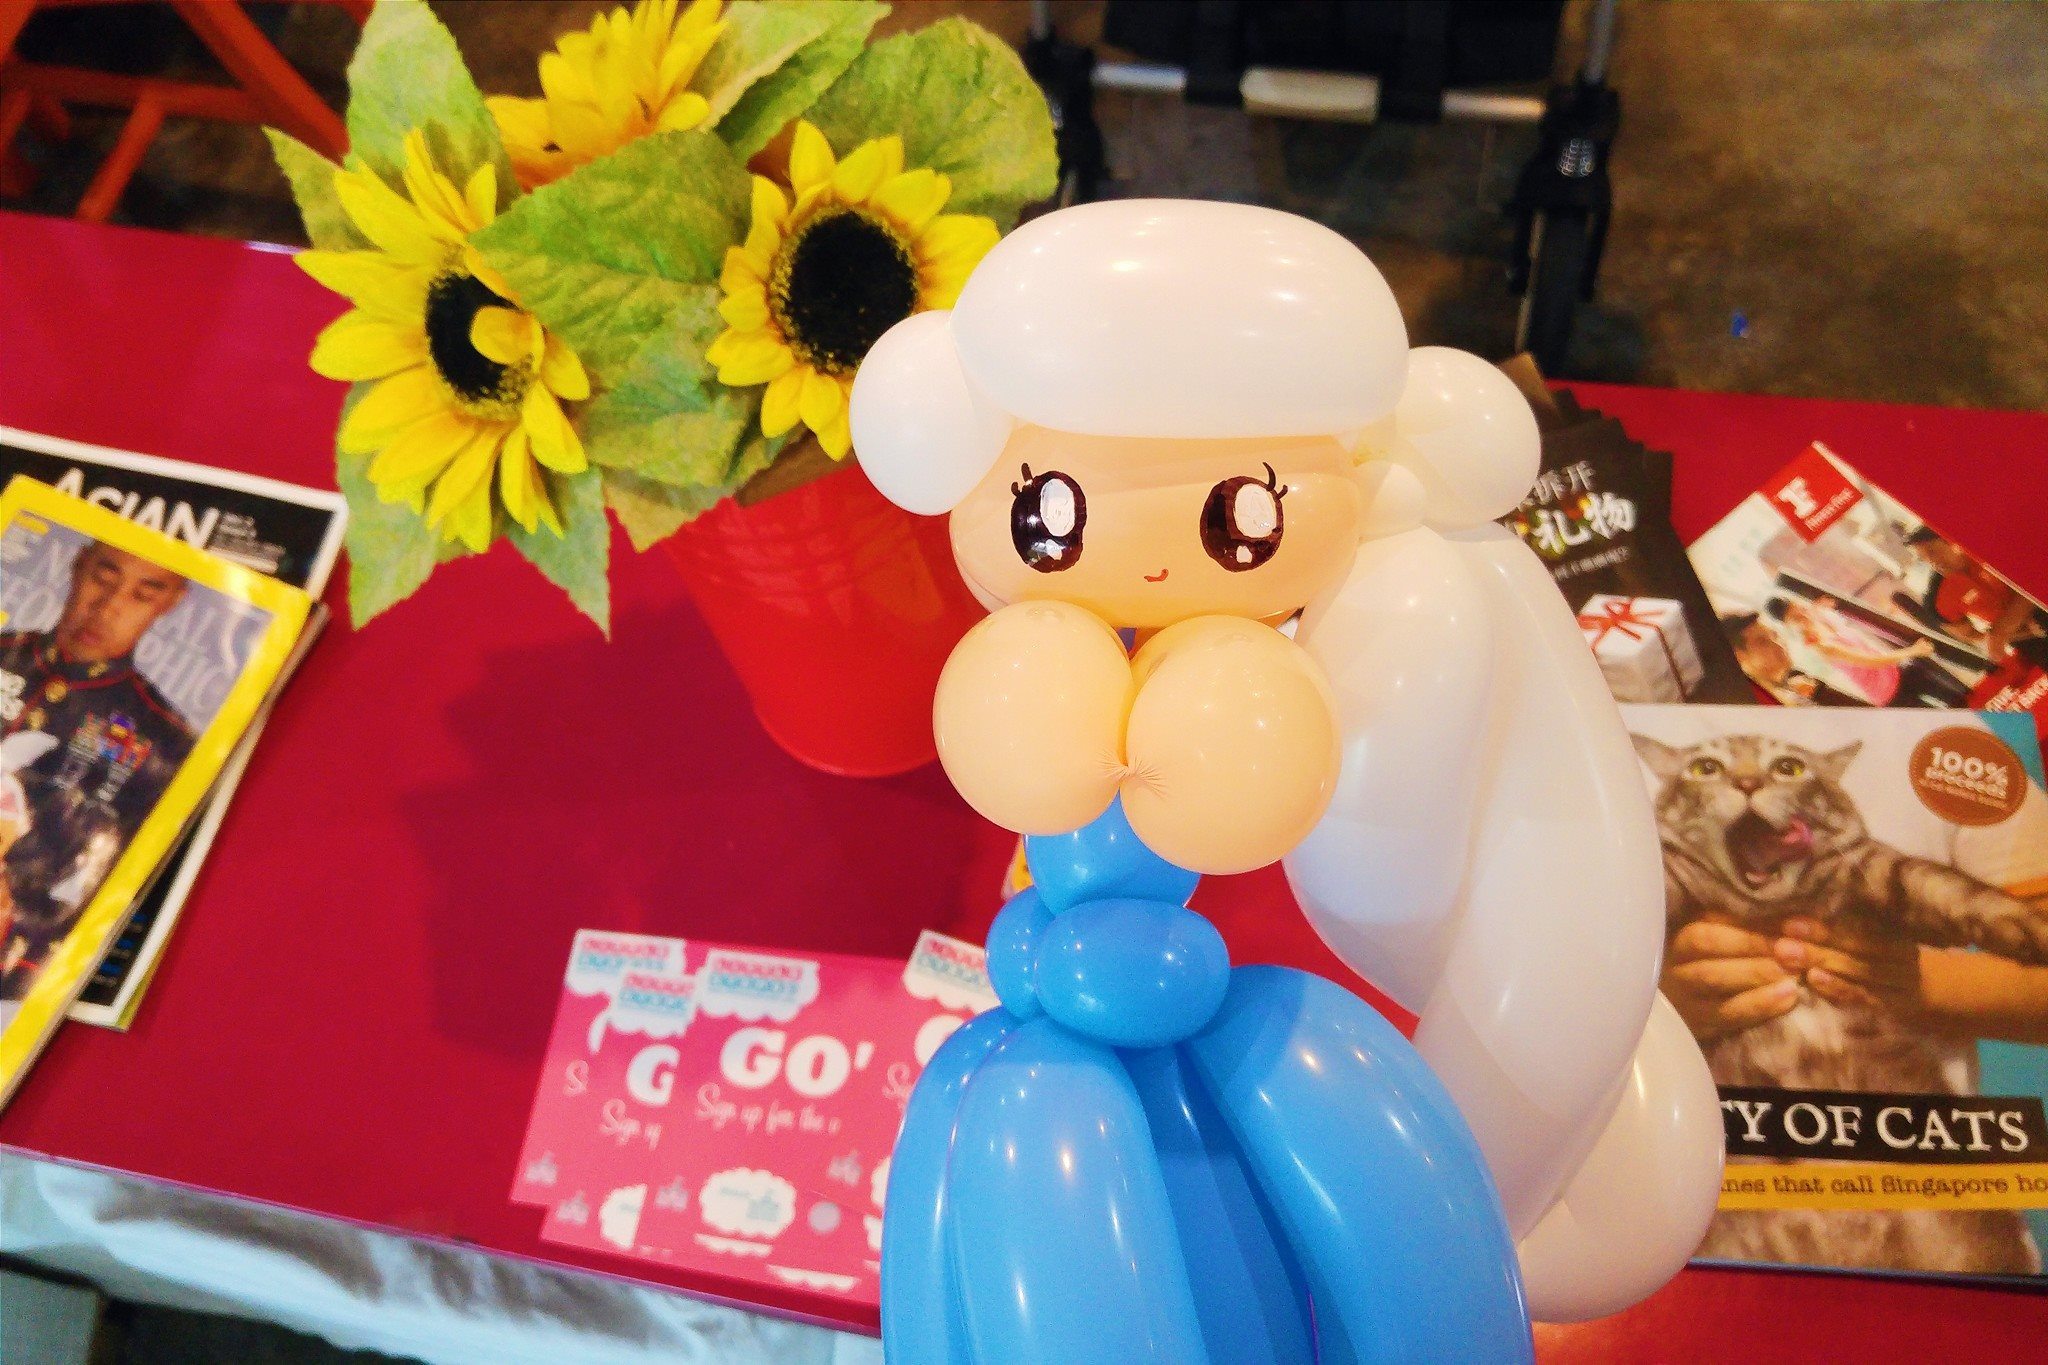 Frozen Elsa Balloon sculpture